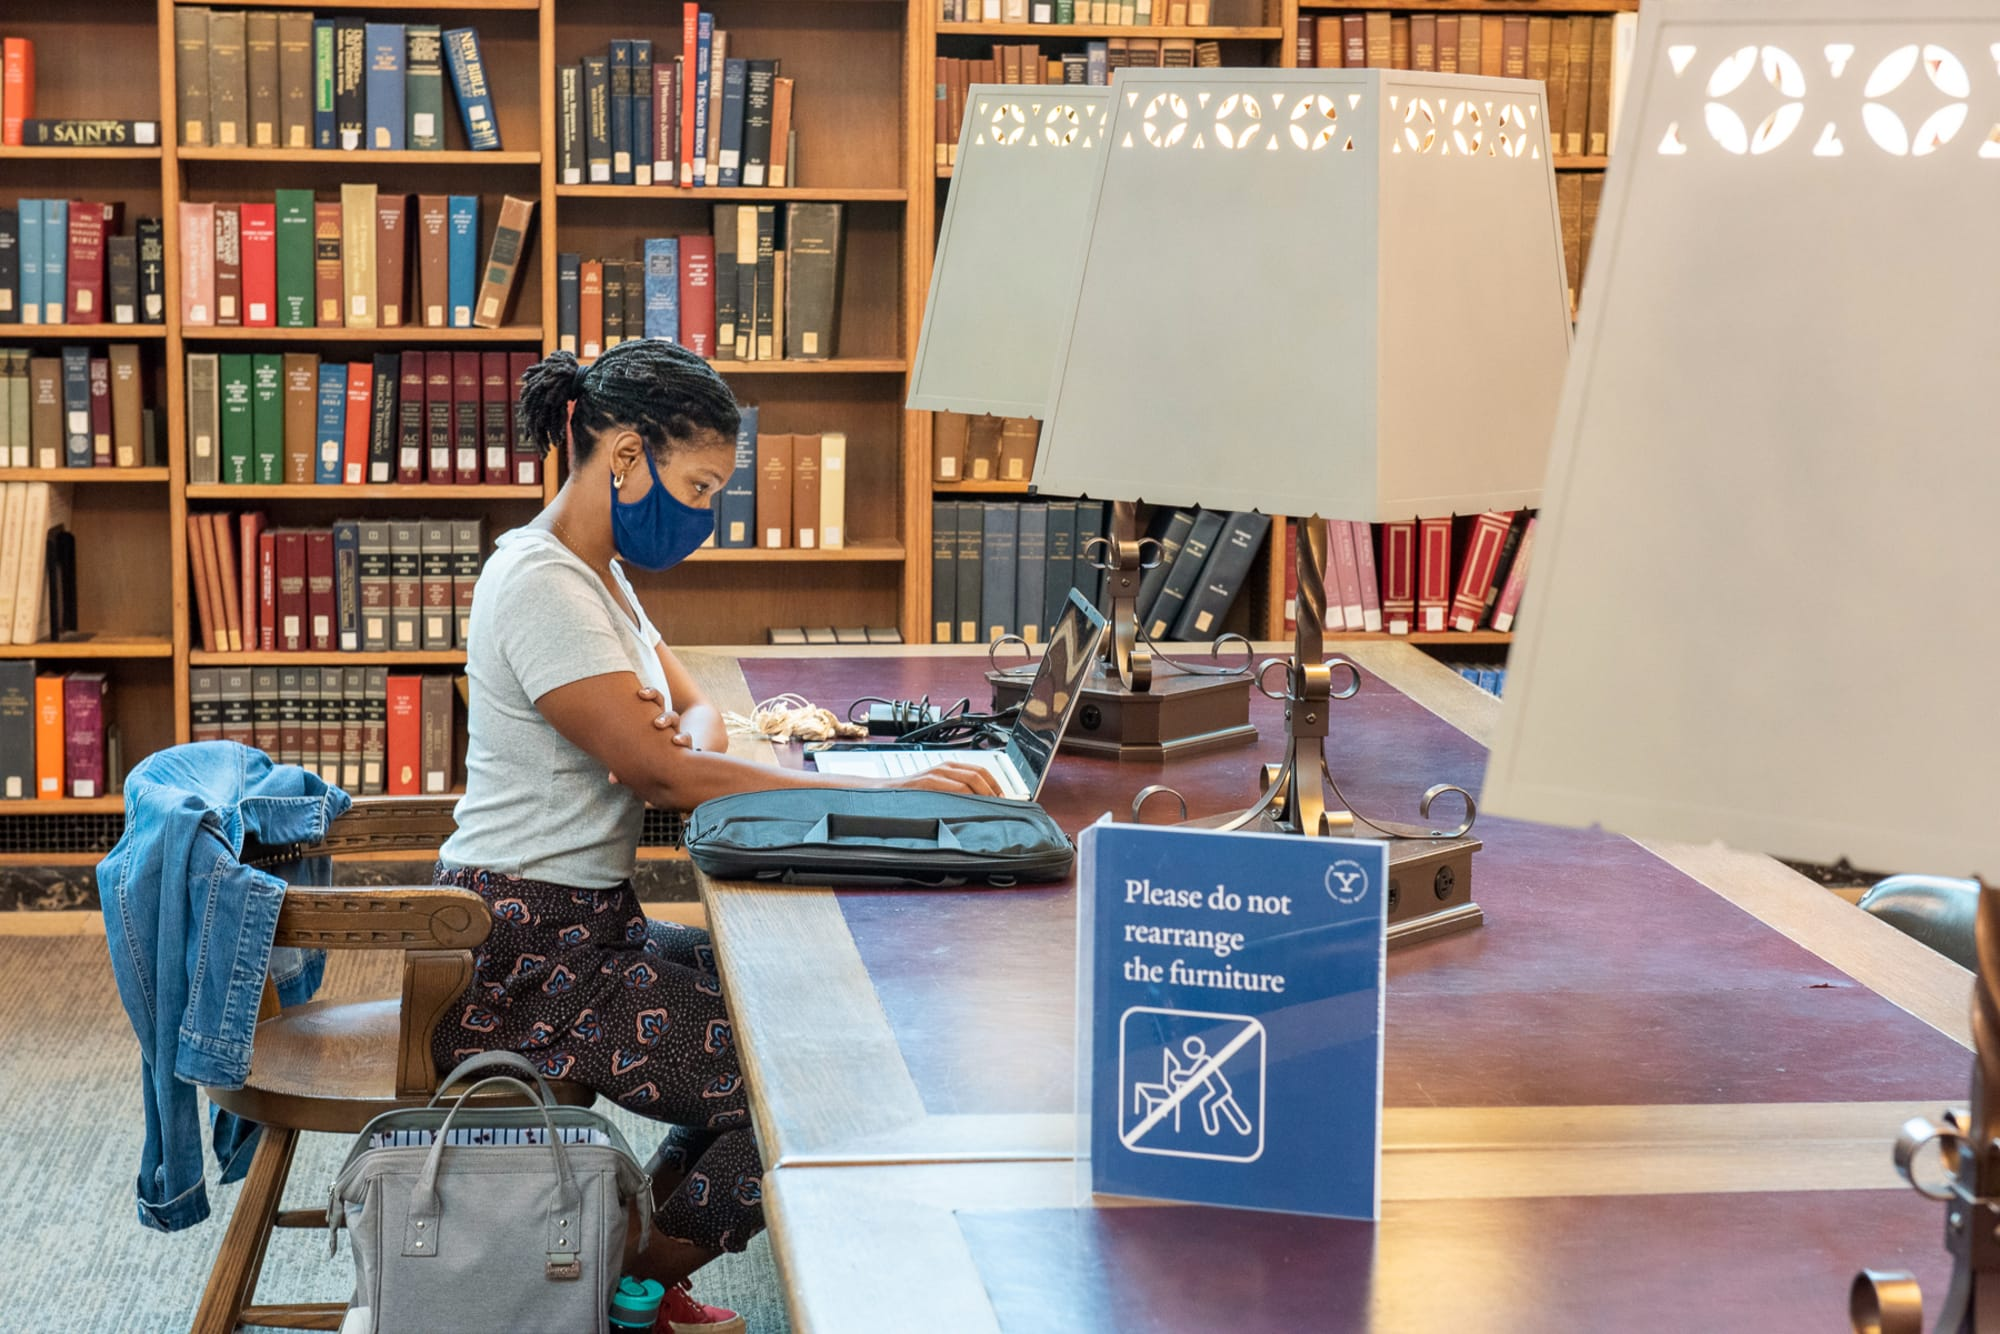 Student sitting with laptop at a wooden table in the Starr Reading Room, with public health signage in foreground. Photo by Mara Lavitt